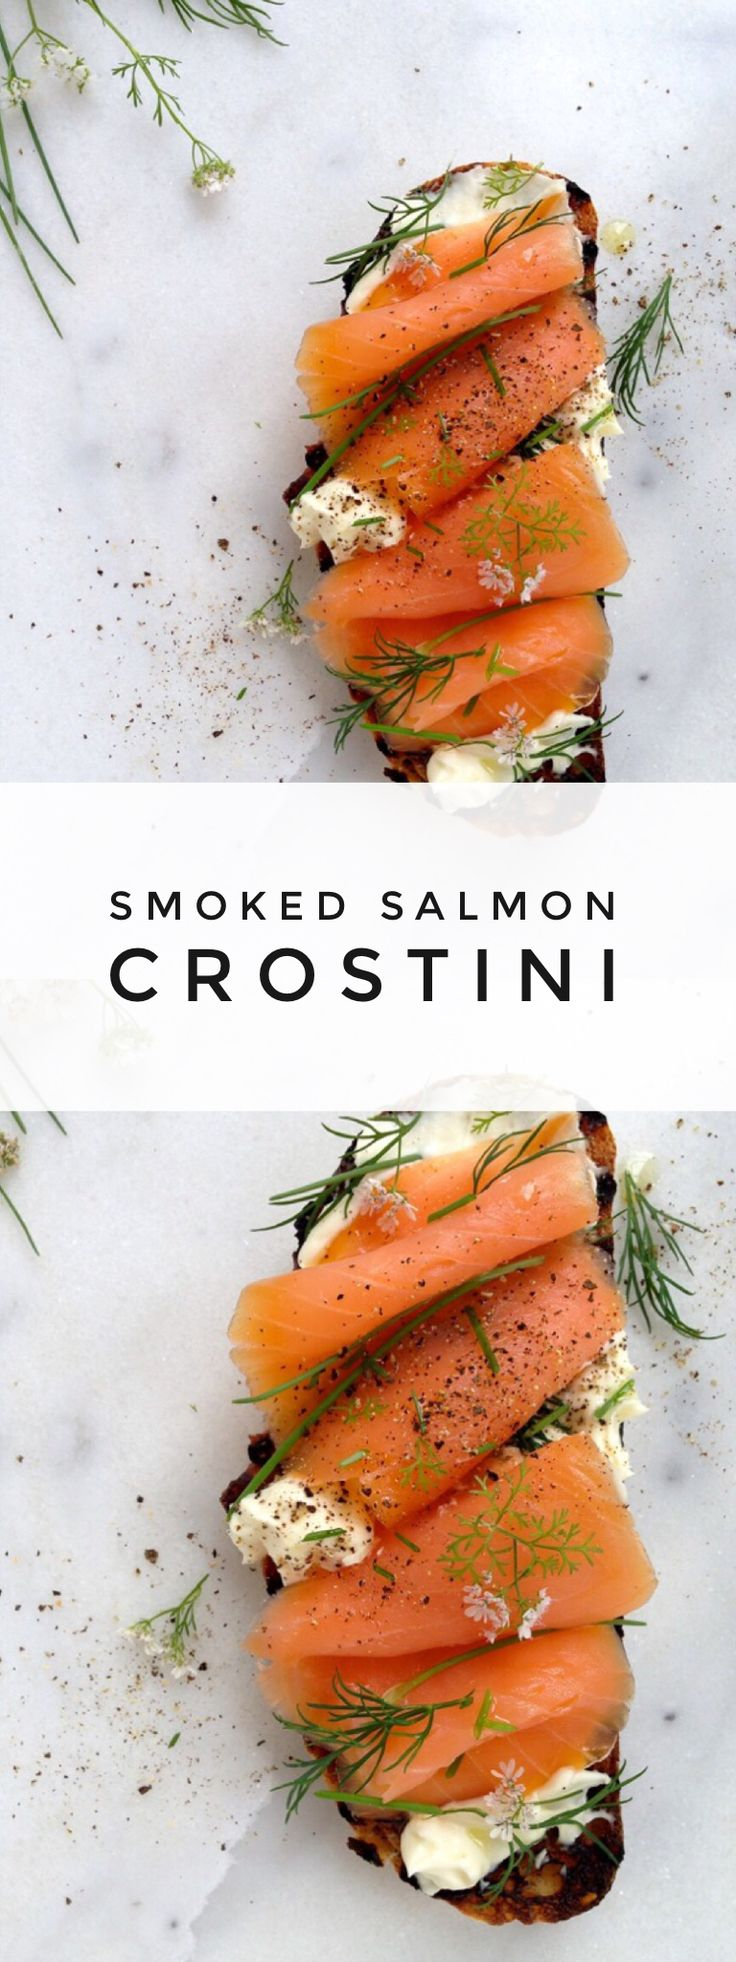 Smoked Salmon Crostini with Mascarpone Cheese | CiaoFlorentina.com @CiaoFlorentina